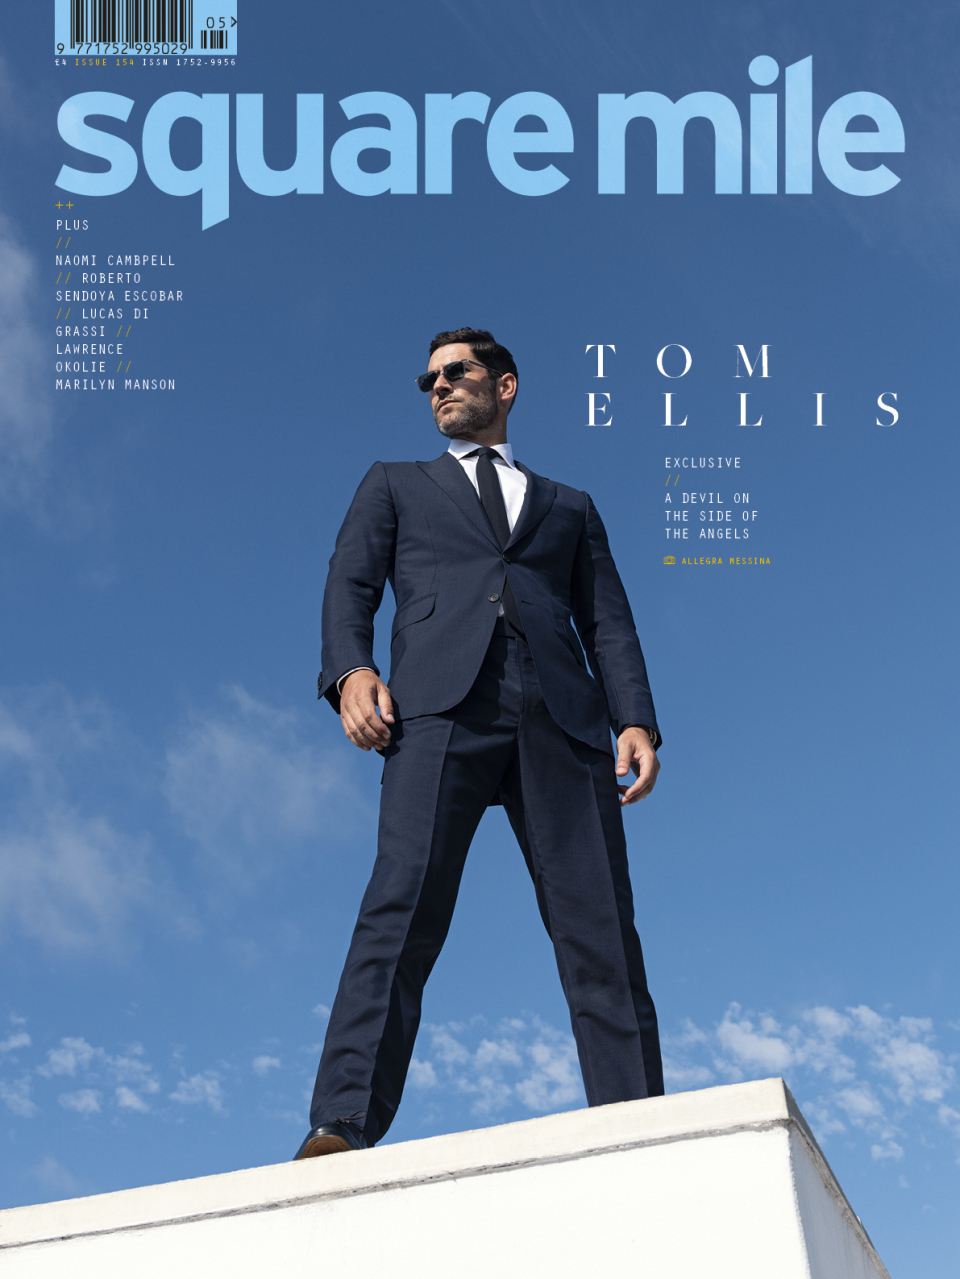 Tom Ellis photographed by Allegra Messina for Square Mile magazine